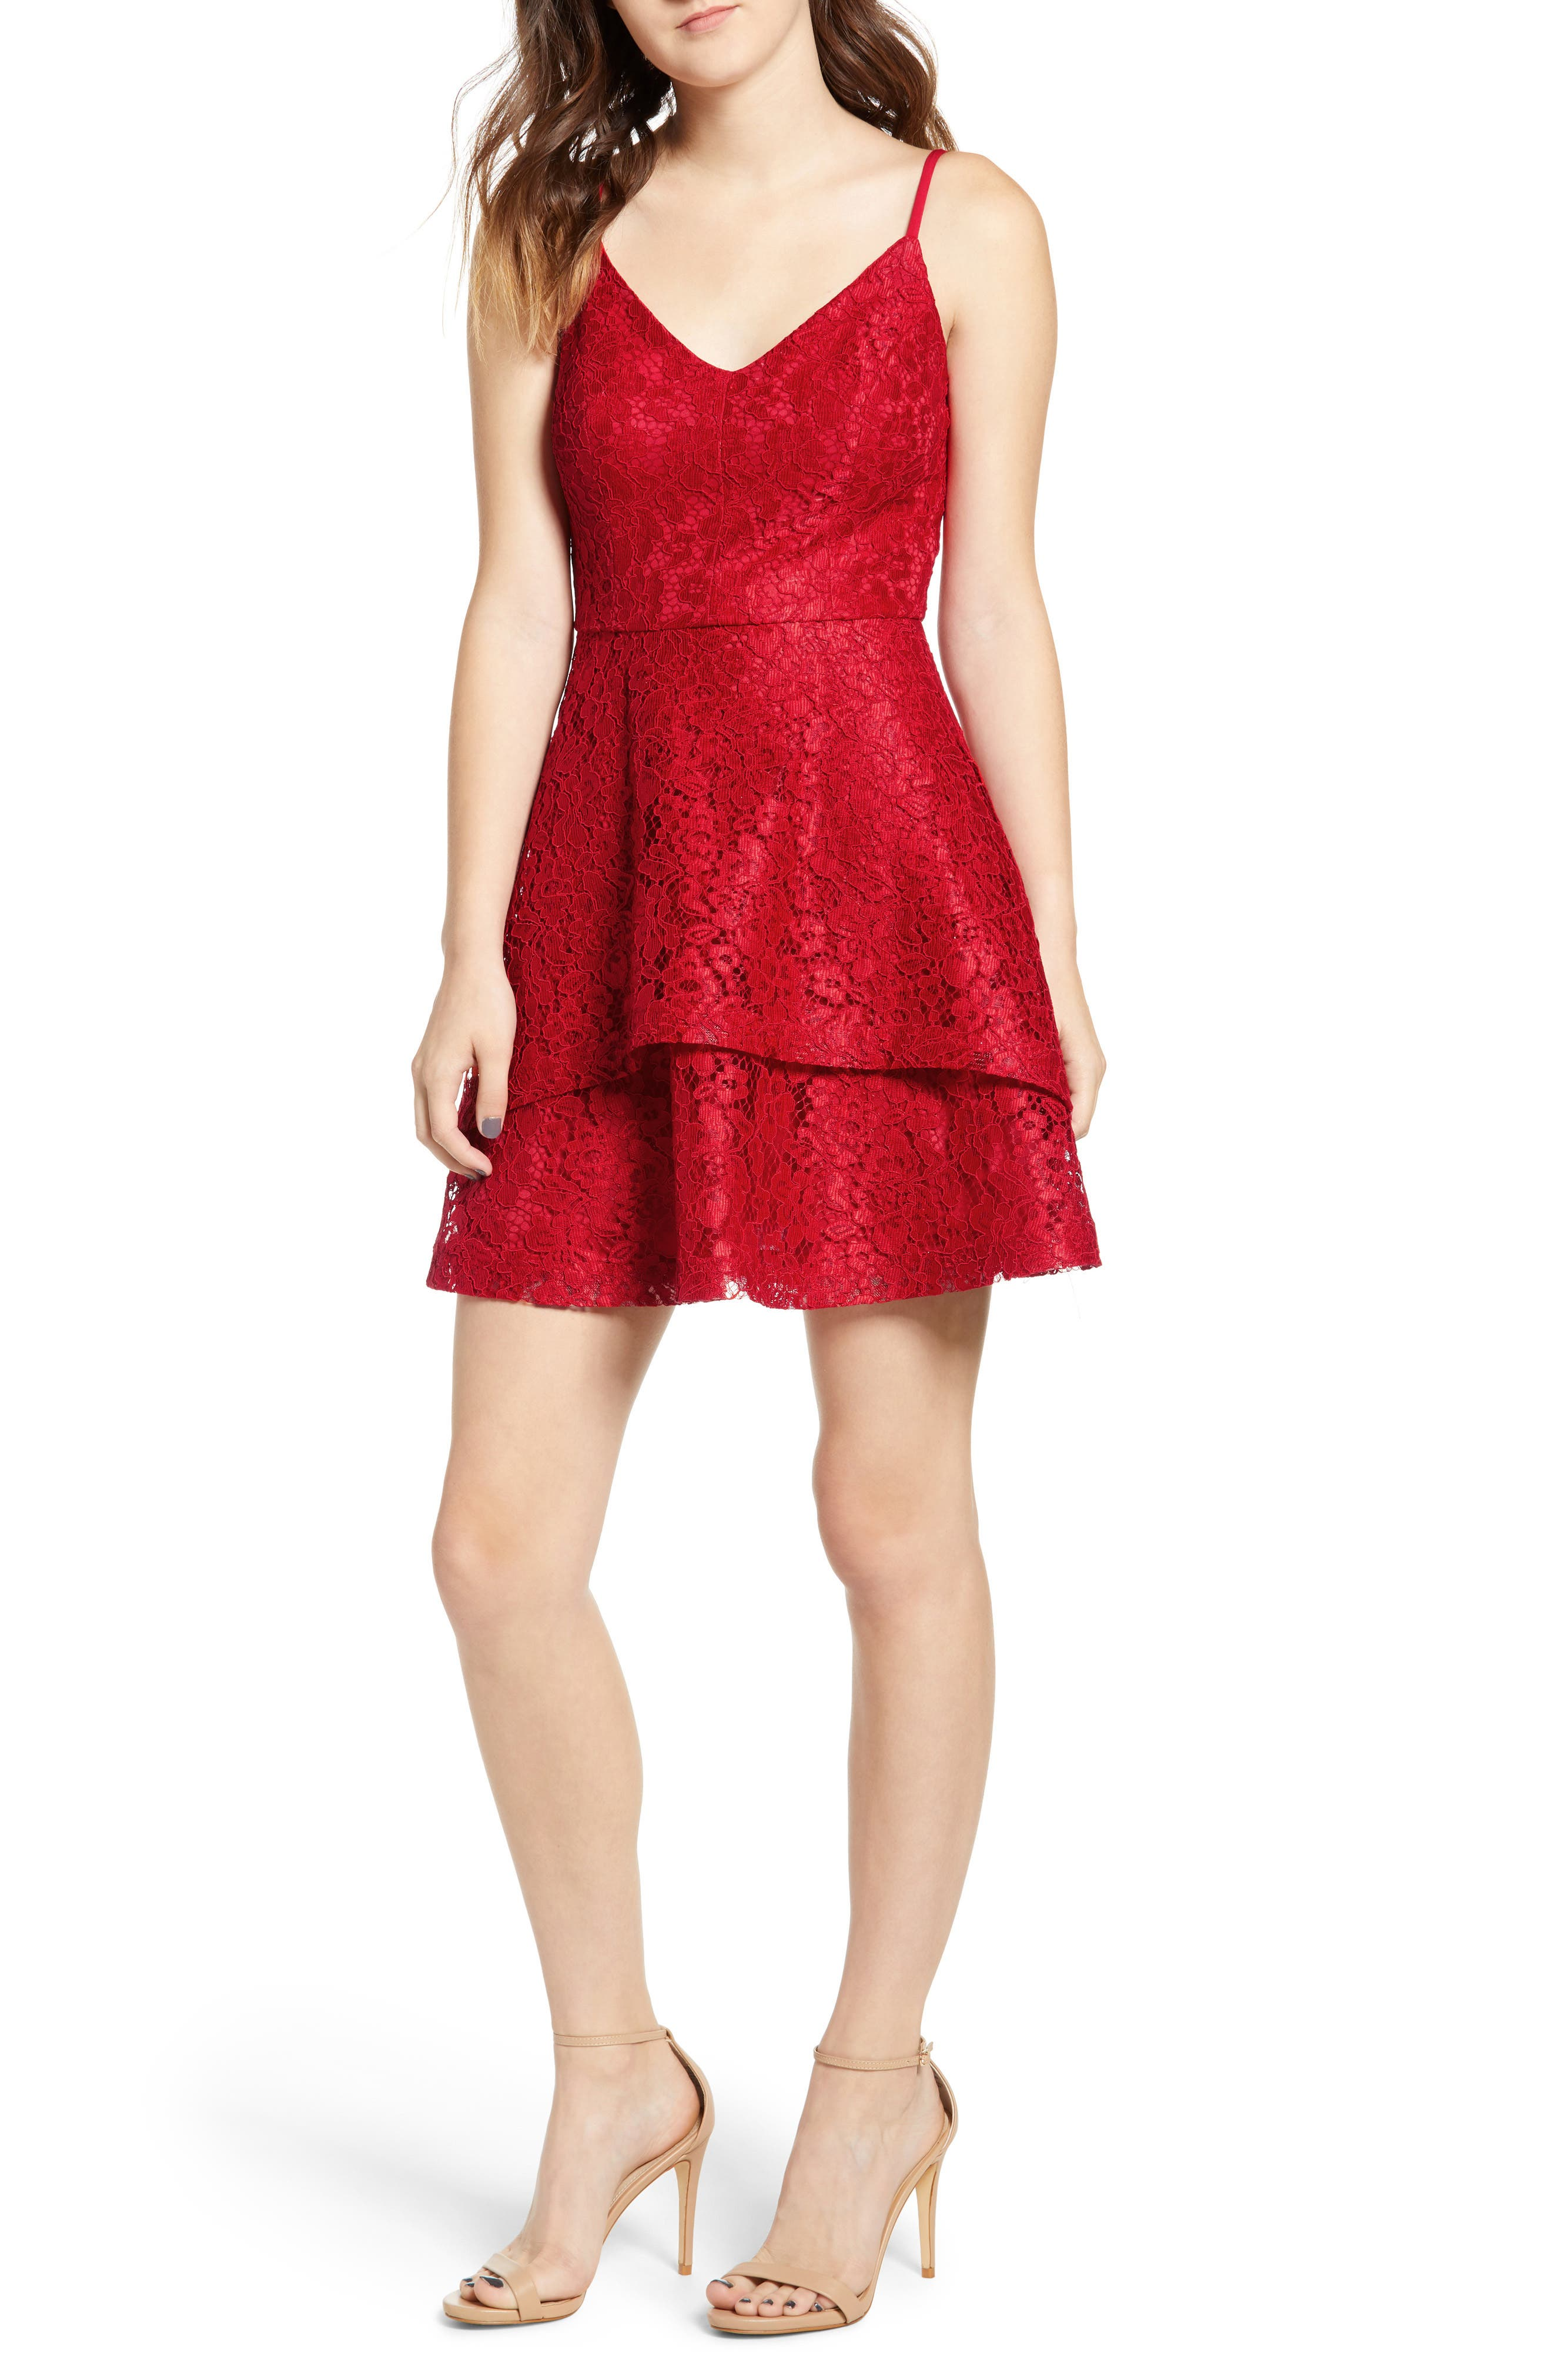 SPEECHLESS, Lace Fit & Flare Dress, Main thumbnail 1, color, 600